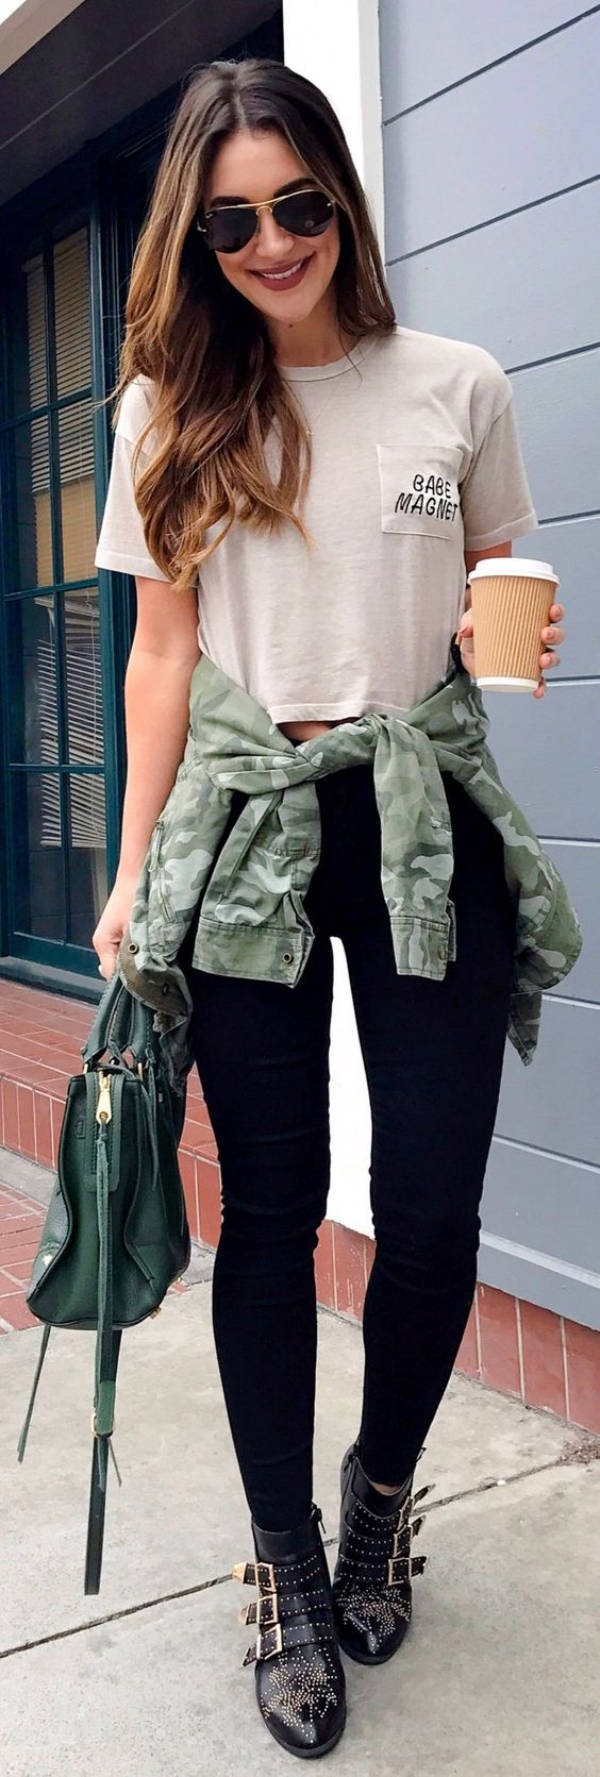 Autumn-Fashion-Outfits-Ideas-34